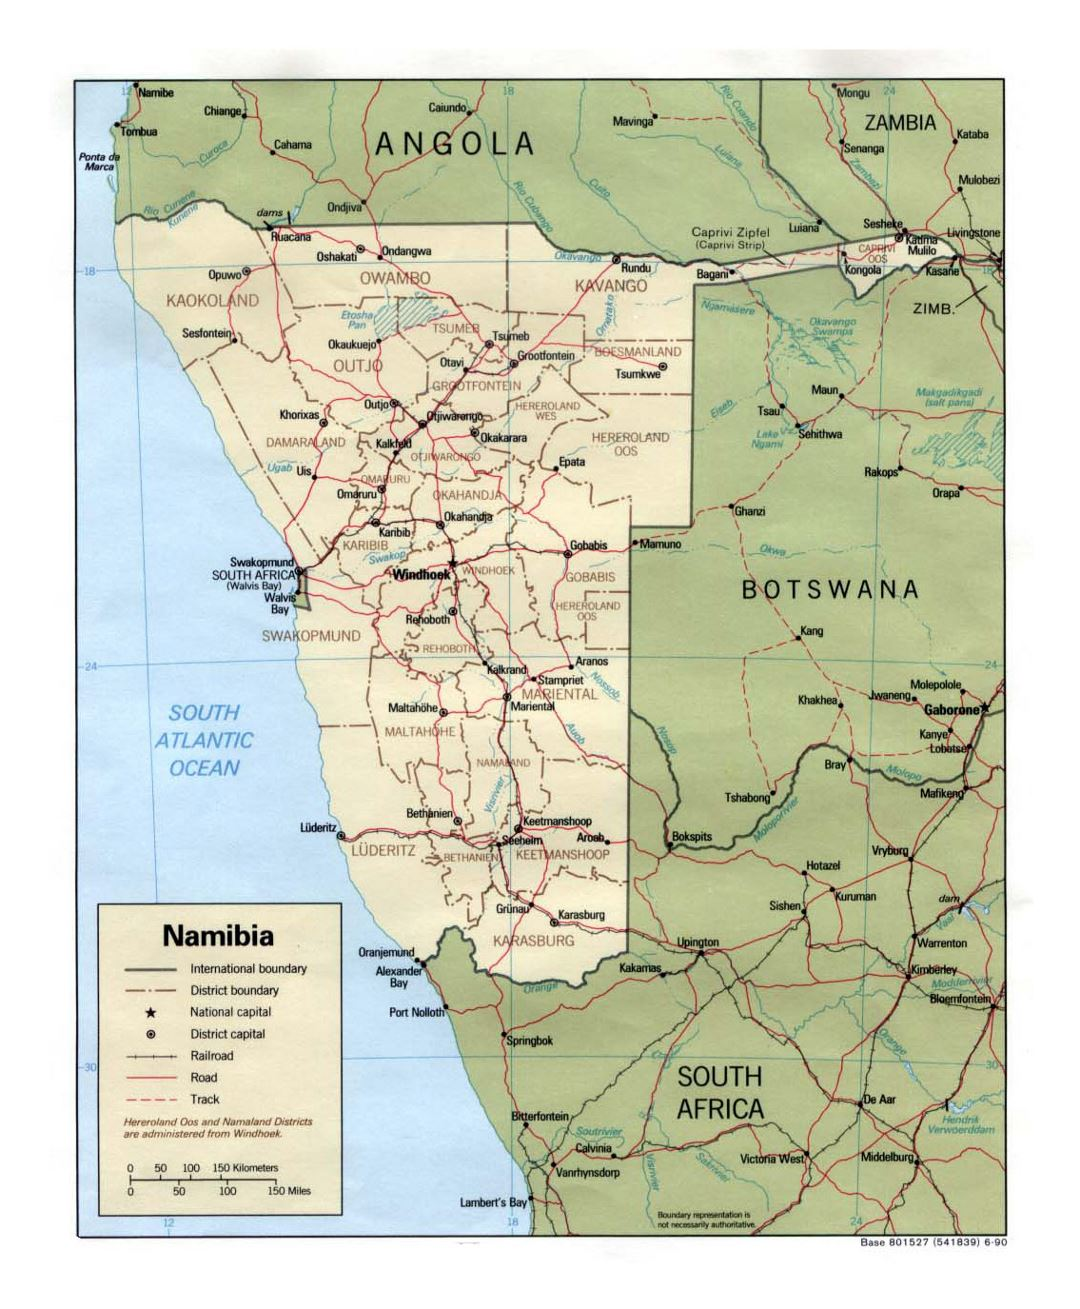 Detailed political and administrative map of Namibia with roads, railroads and major cities - 1990